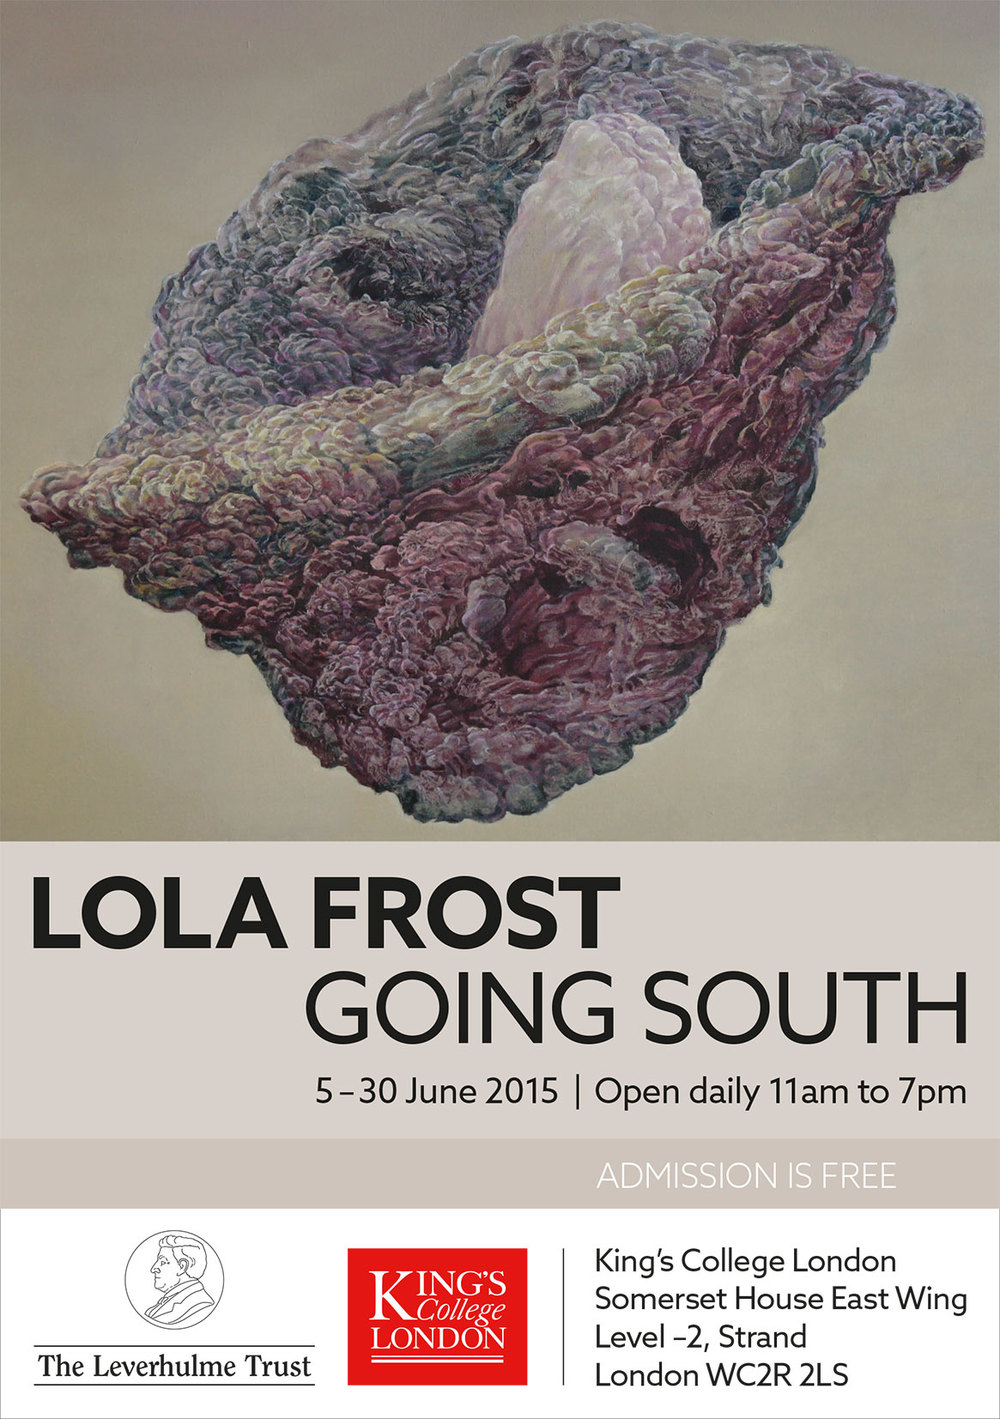 Lola-Frost_Going-South-Exhibition_A5Card-1.jpg